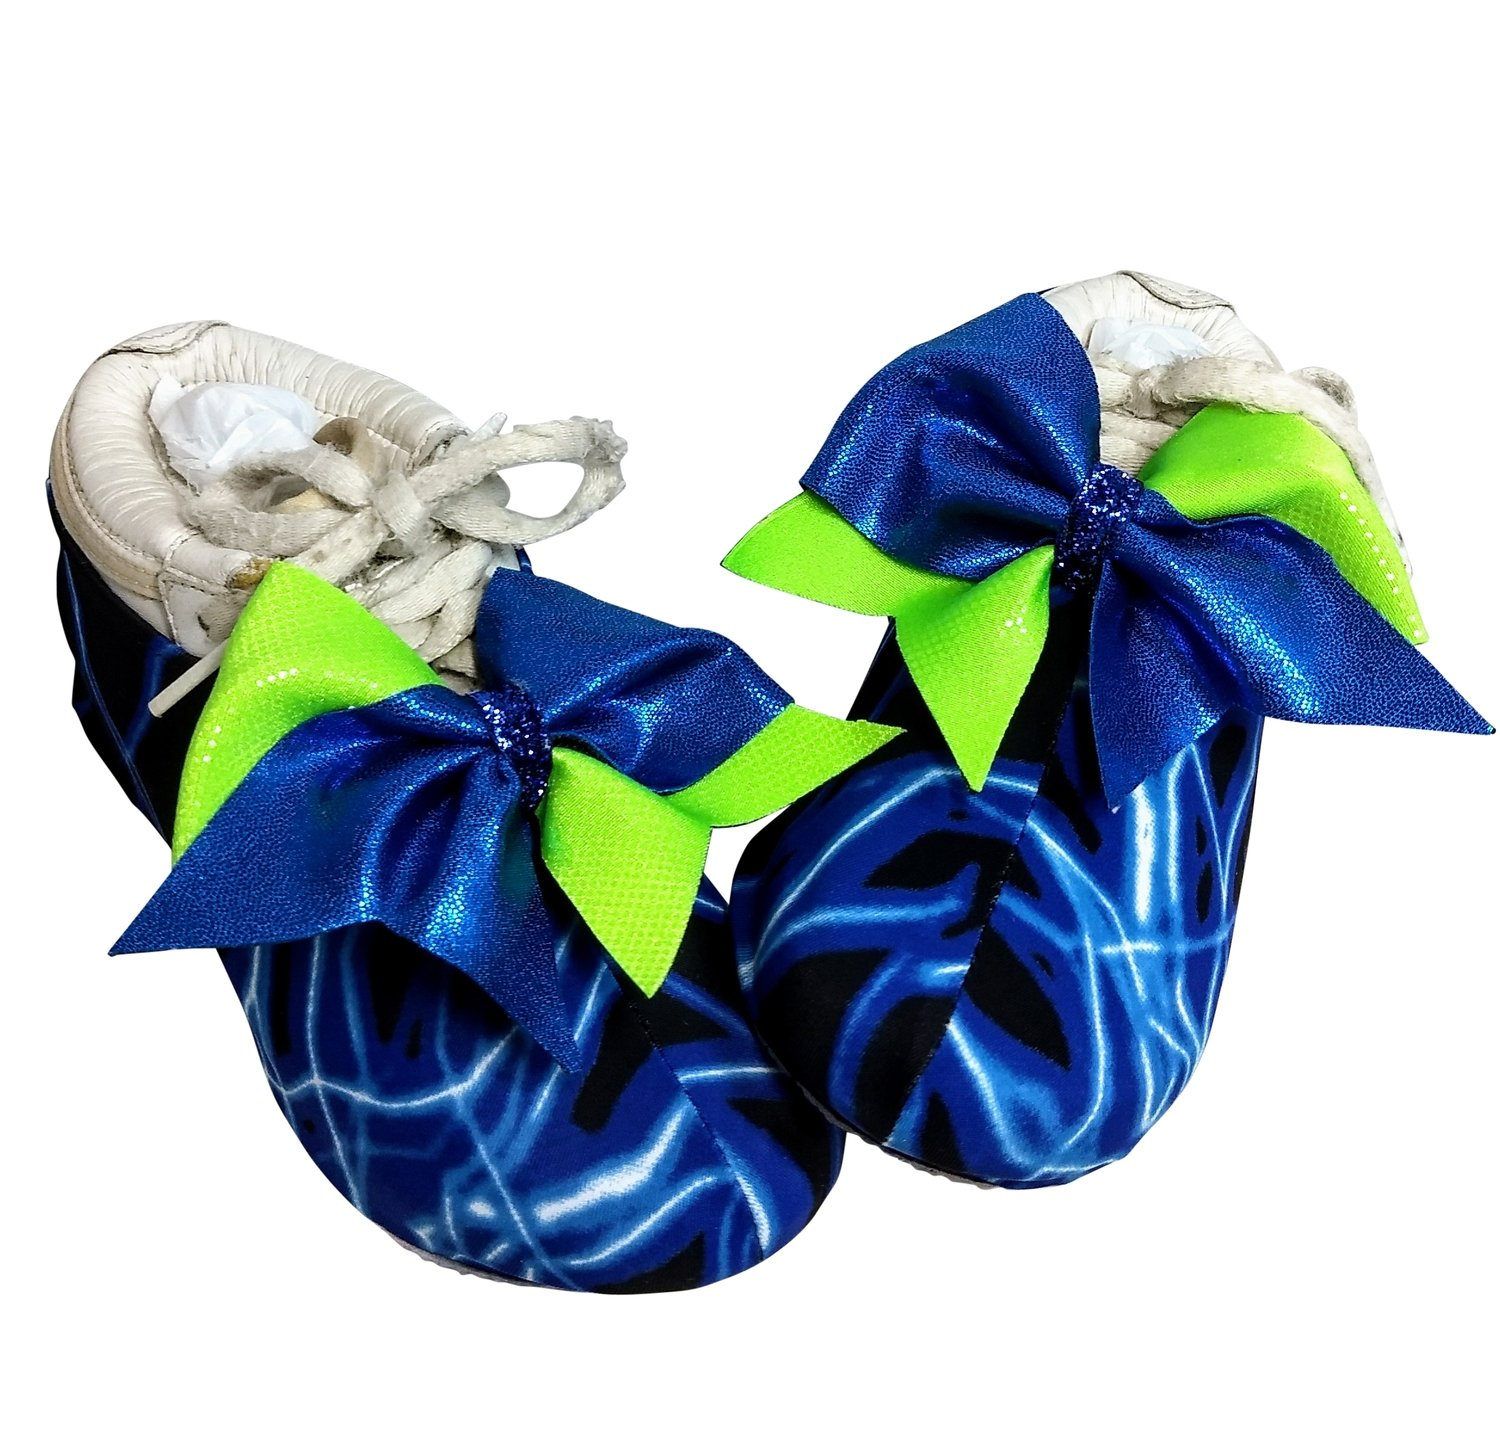 Lightning Flash Cheer Shoe Covers